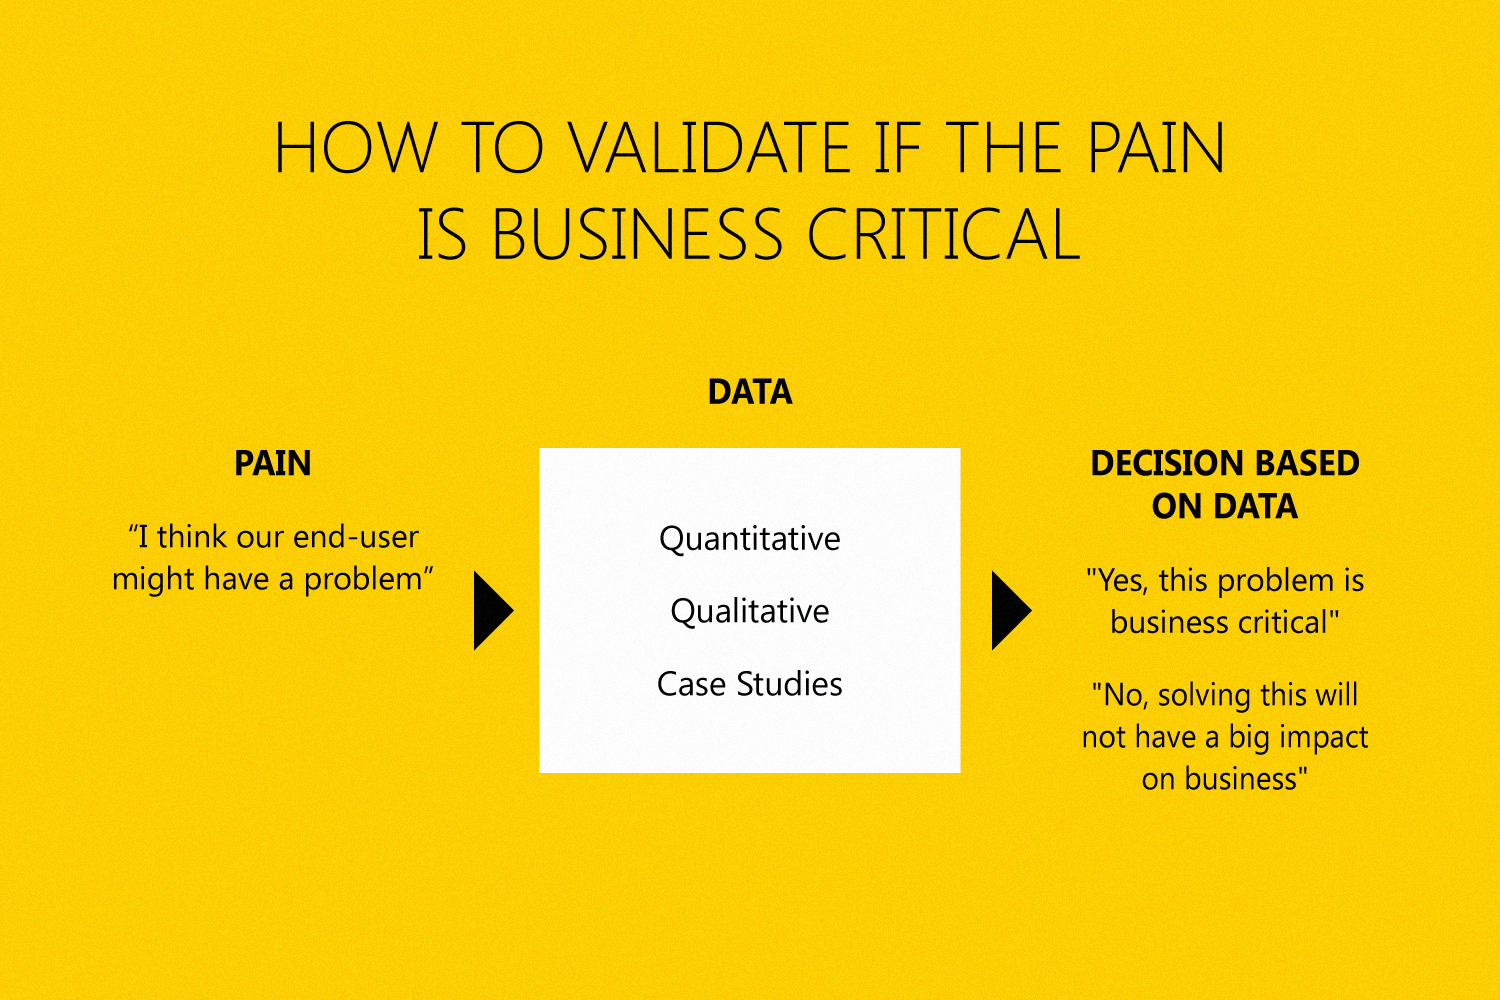 Data-driven feature prioritization help you to validate if the pain you're dealing with is impactful